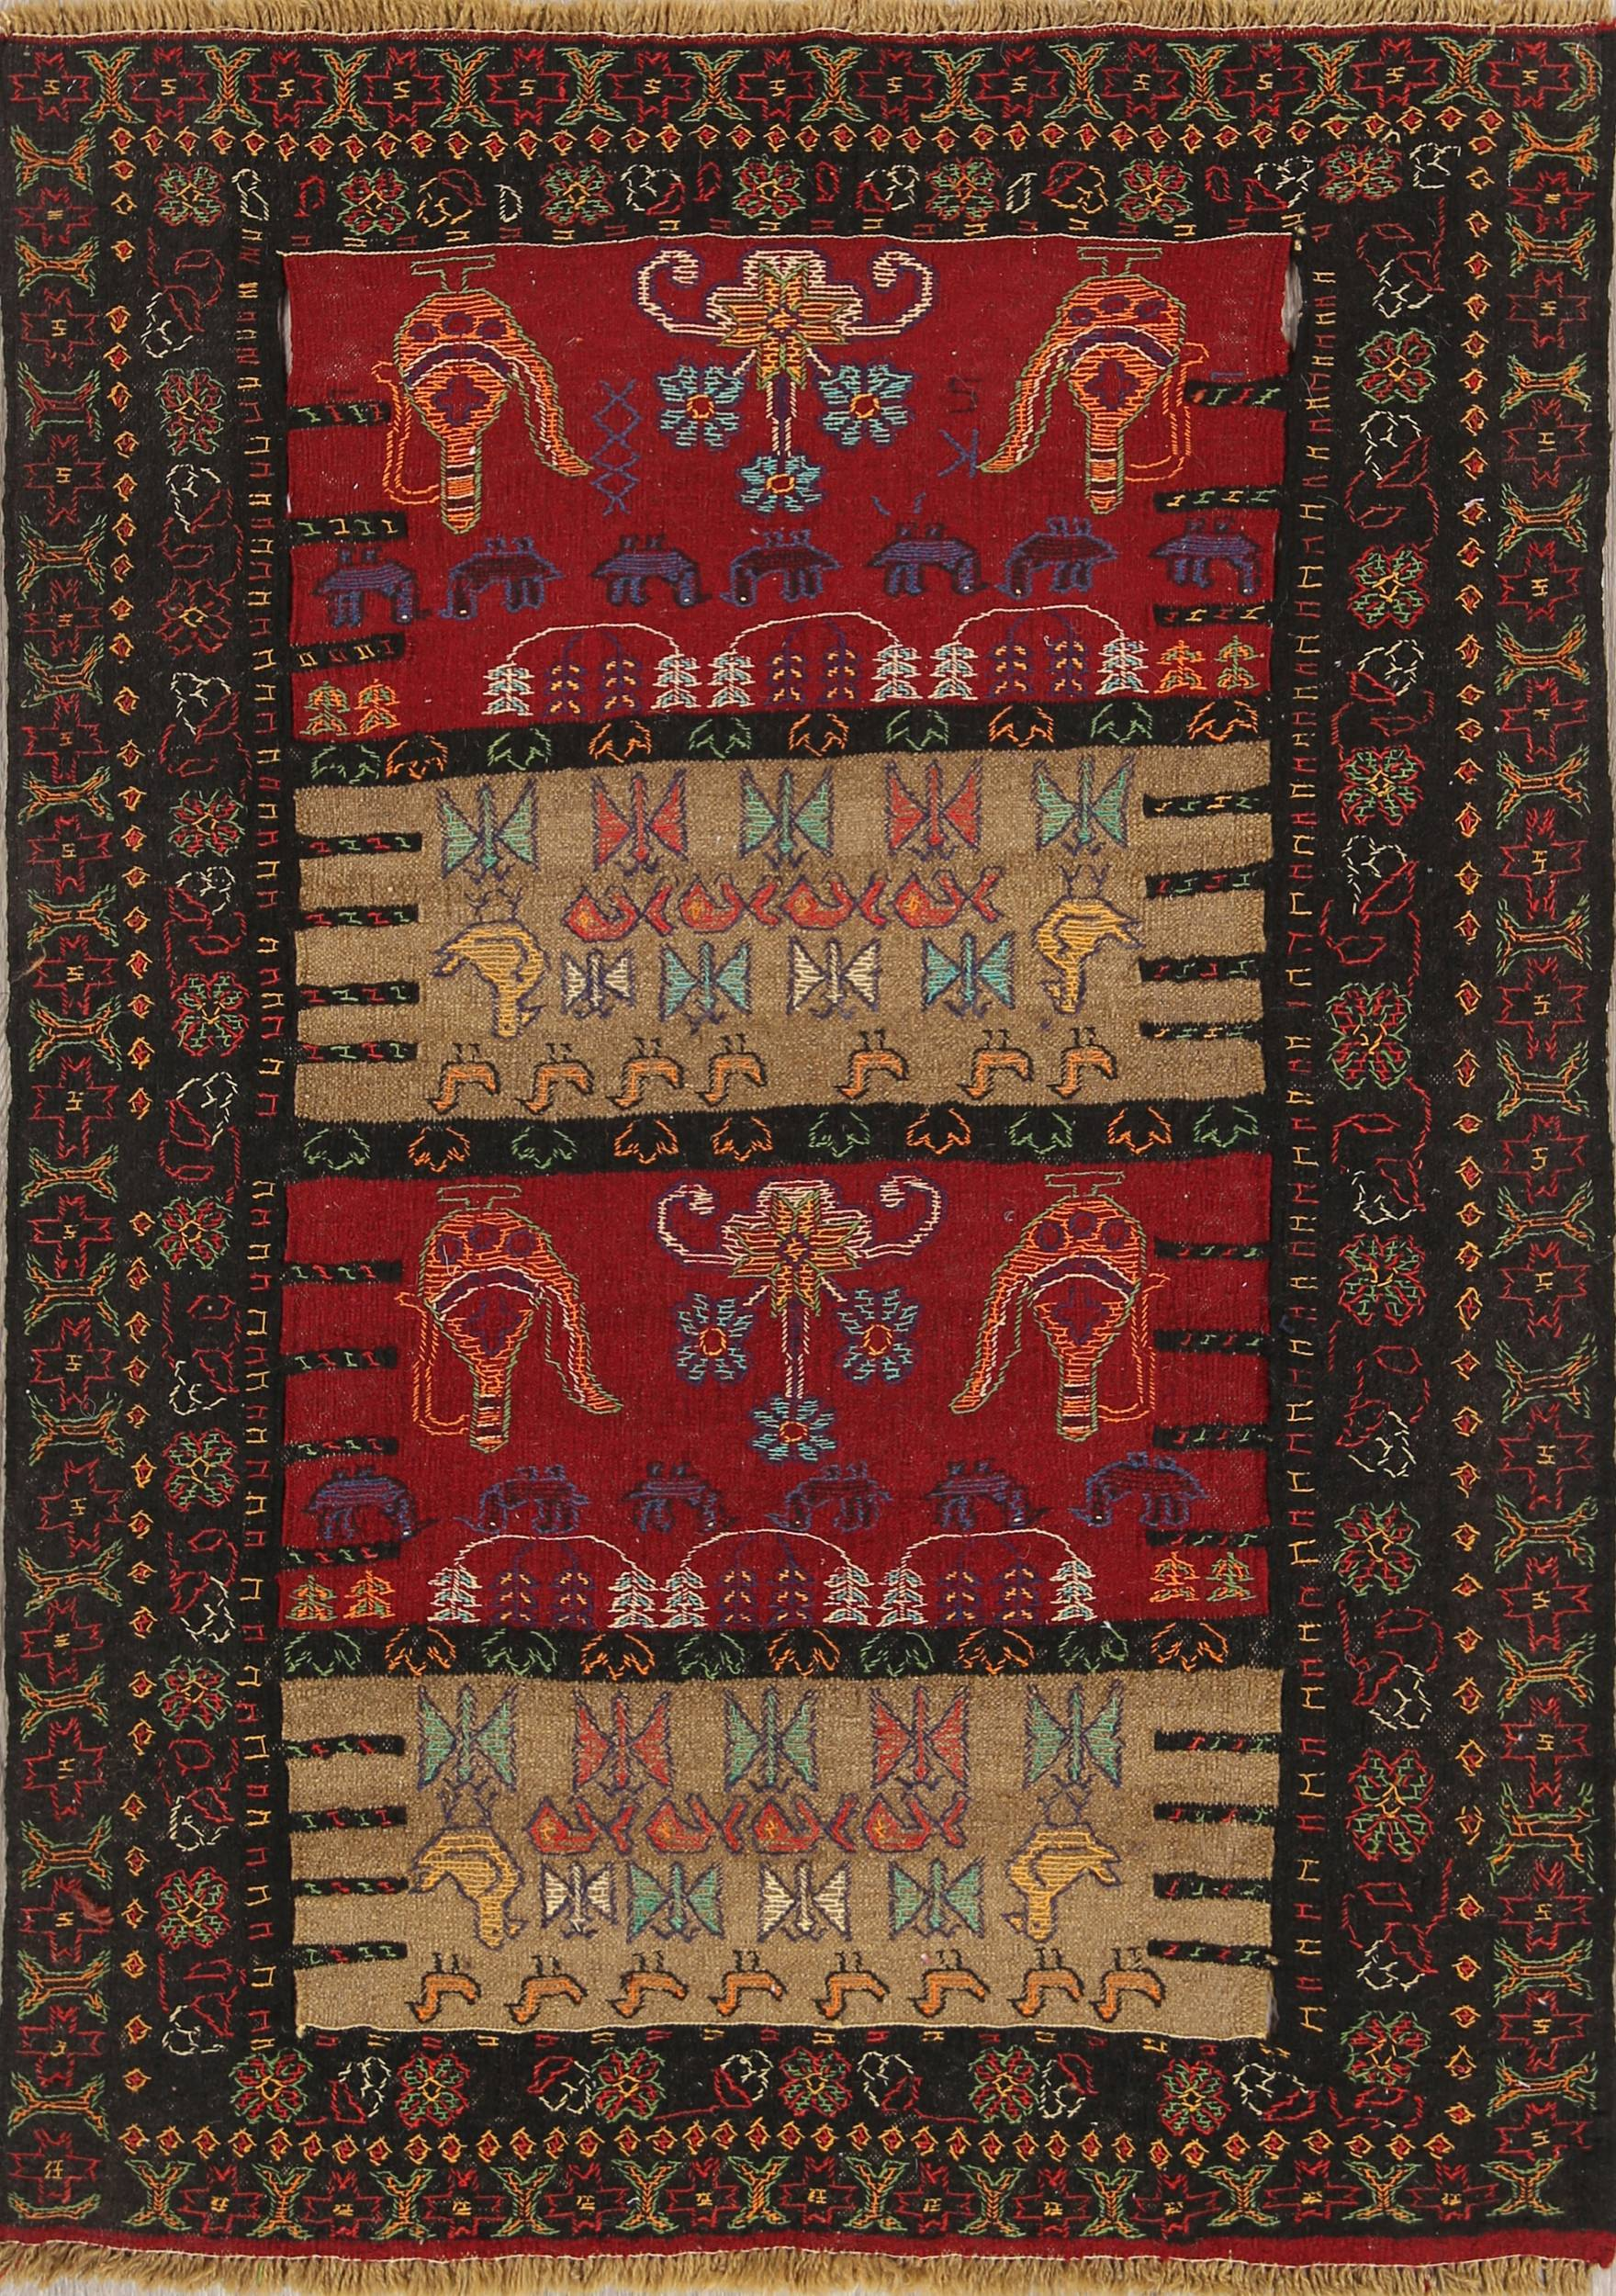 Geometric Tribal Kilim Shiraz Persian Hand-Woven Area Rug Wool 4x6